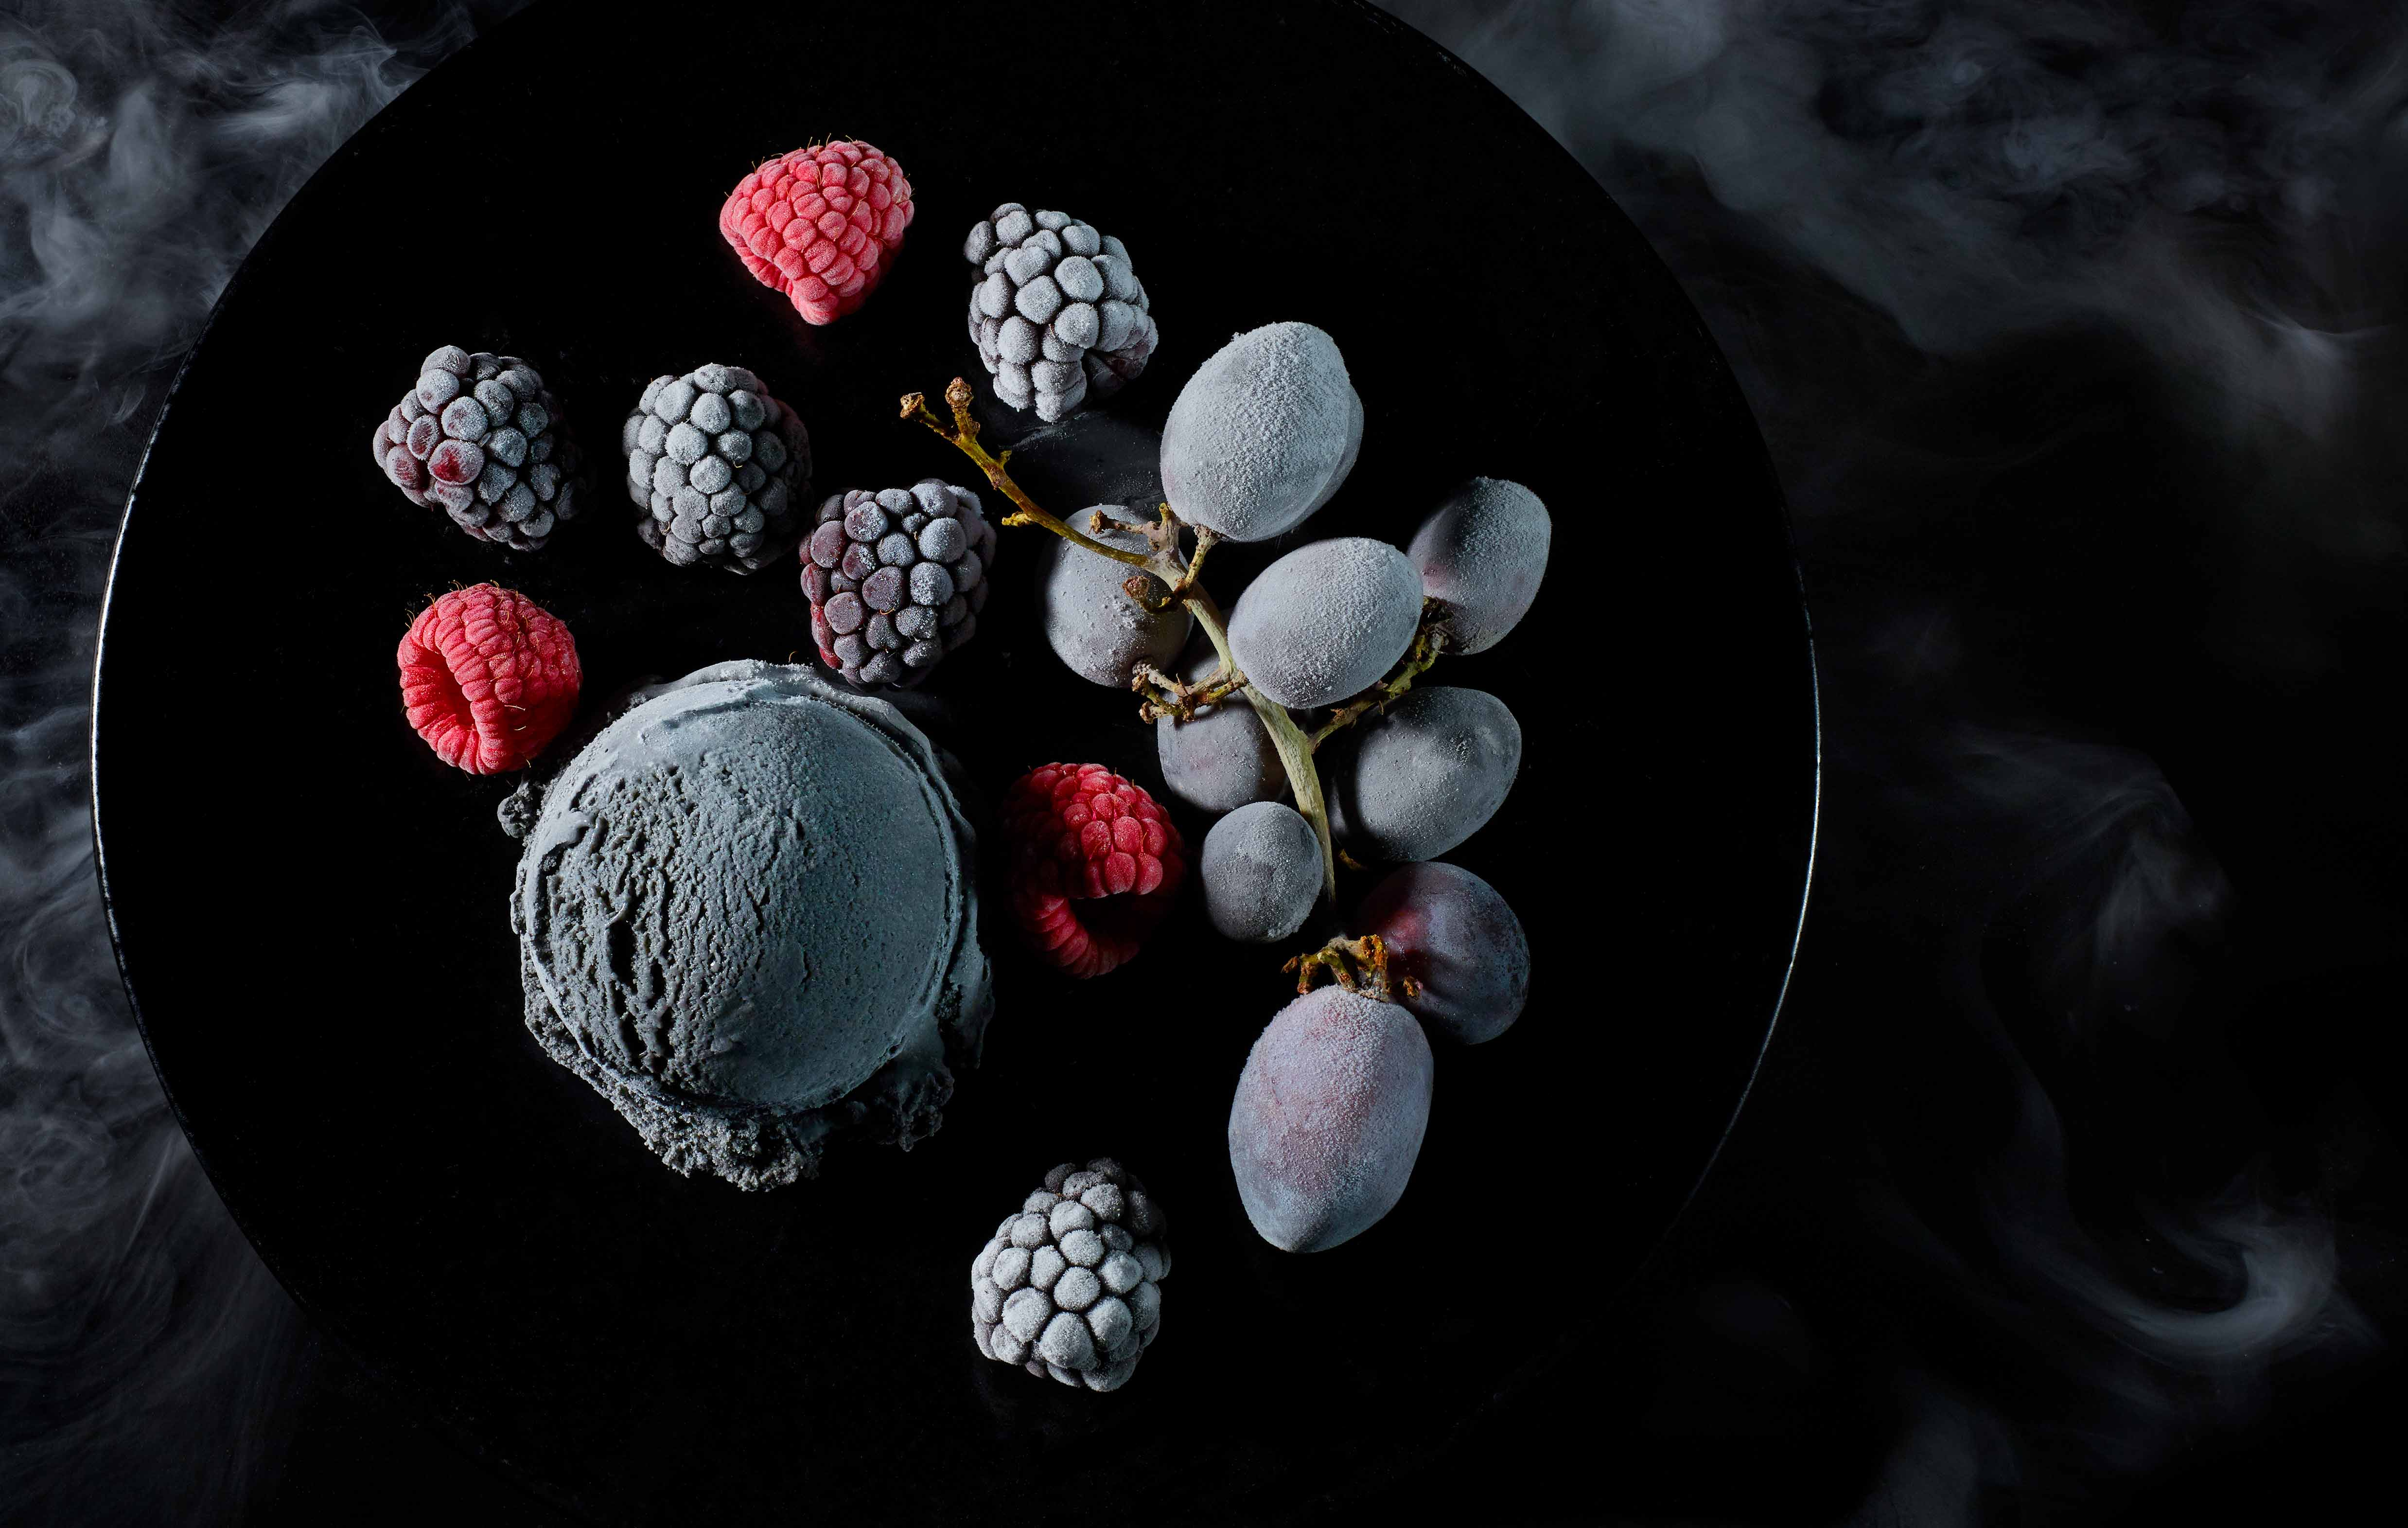 Charcoal Ice-cream with Frozen Fruits